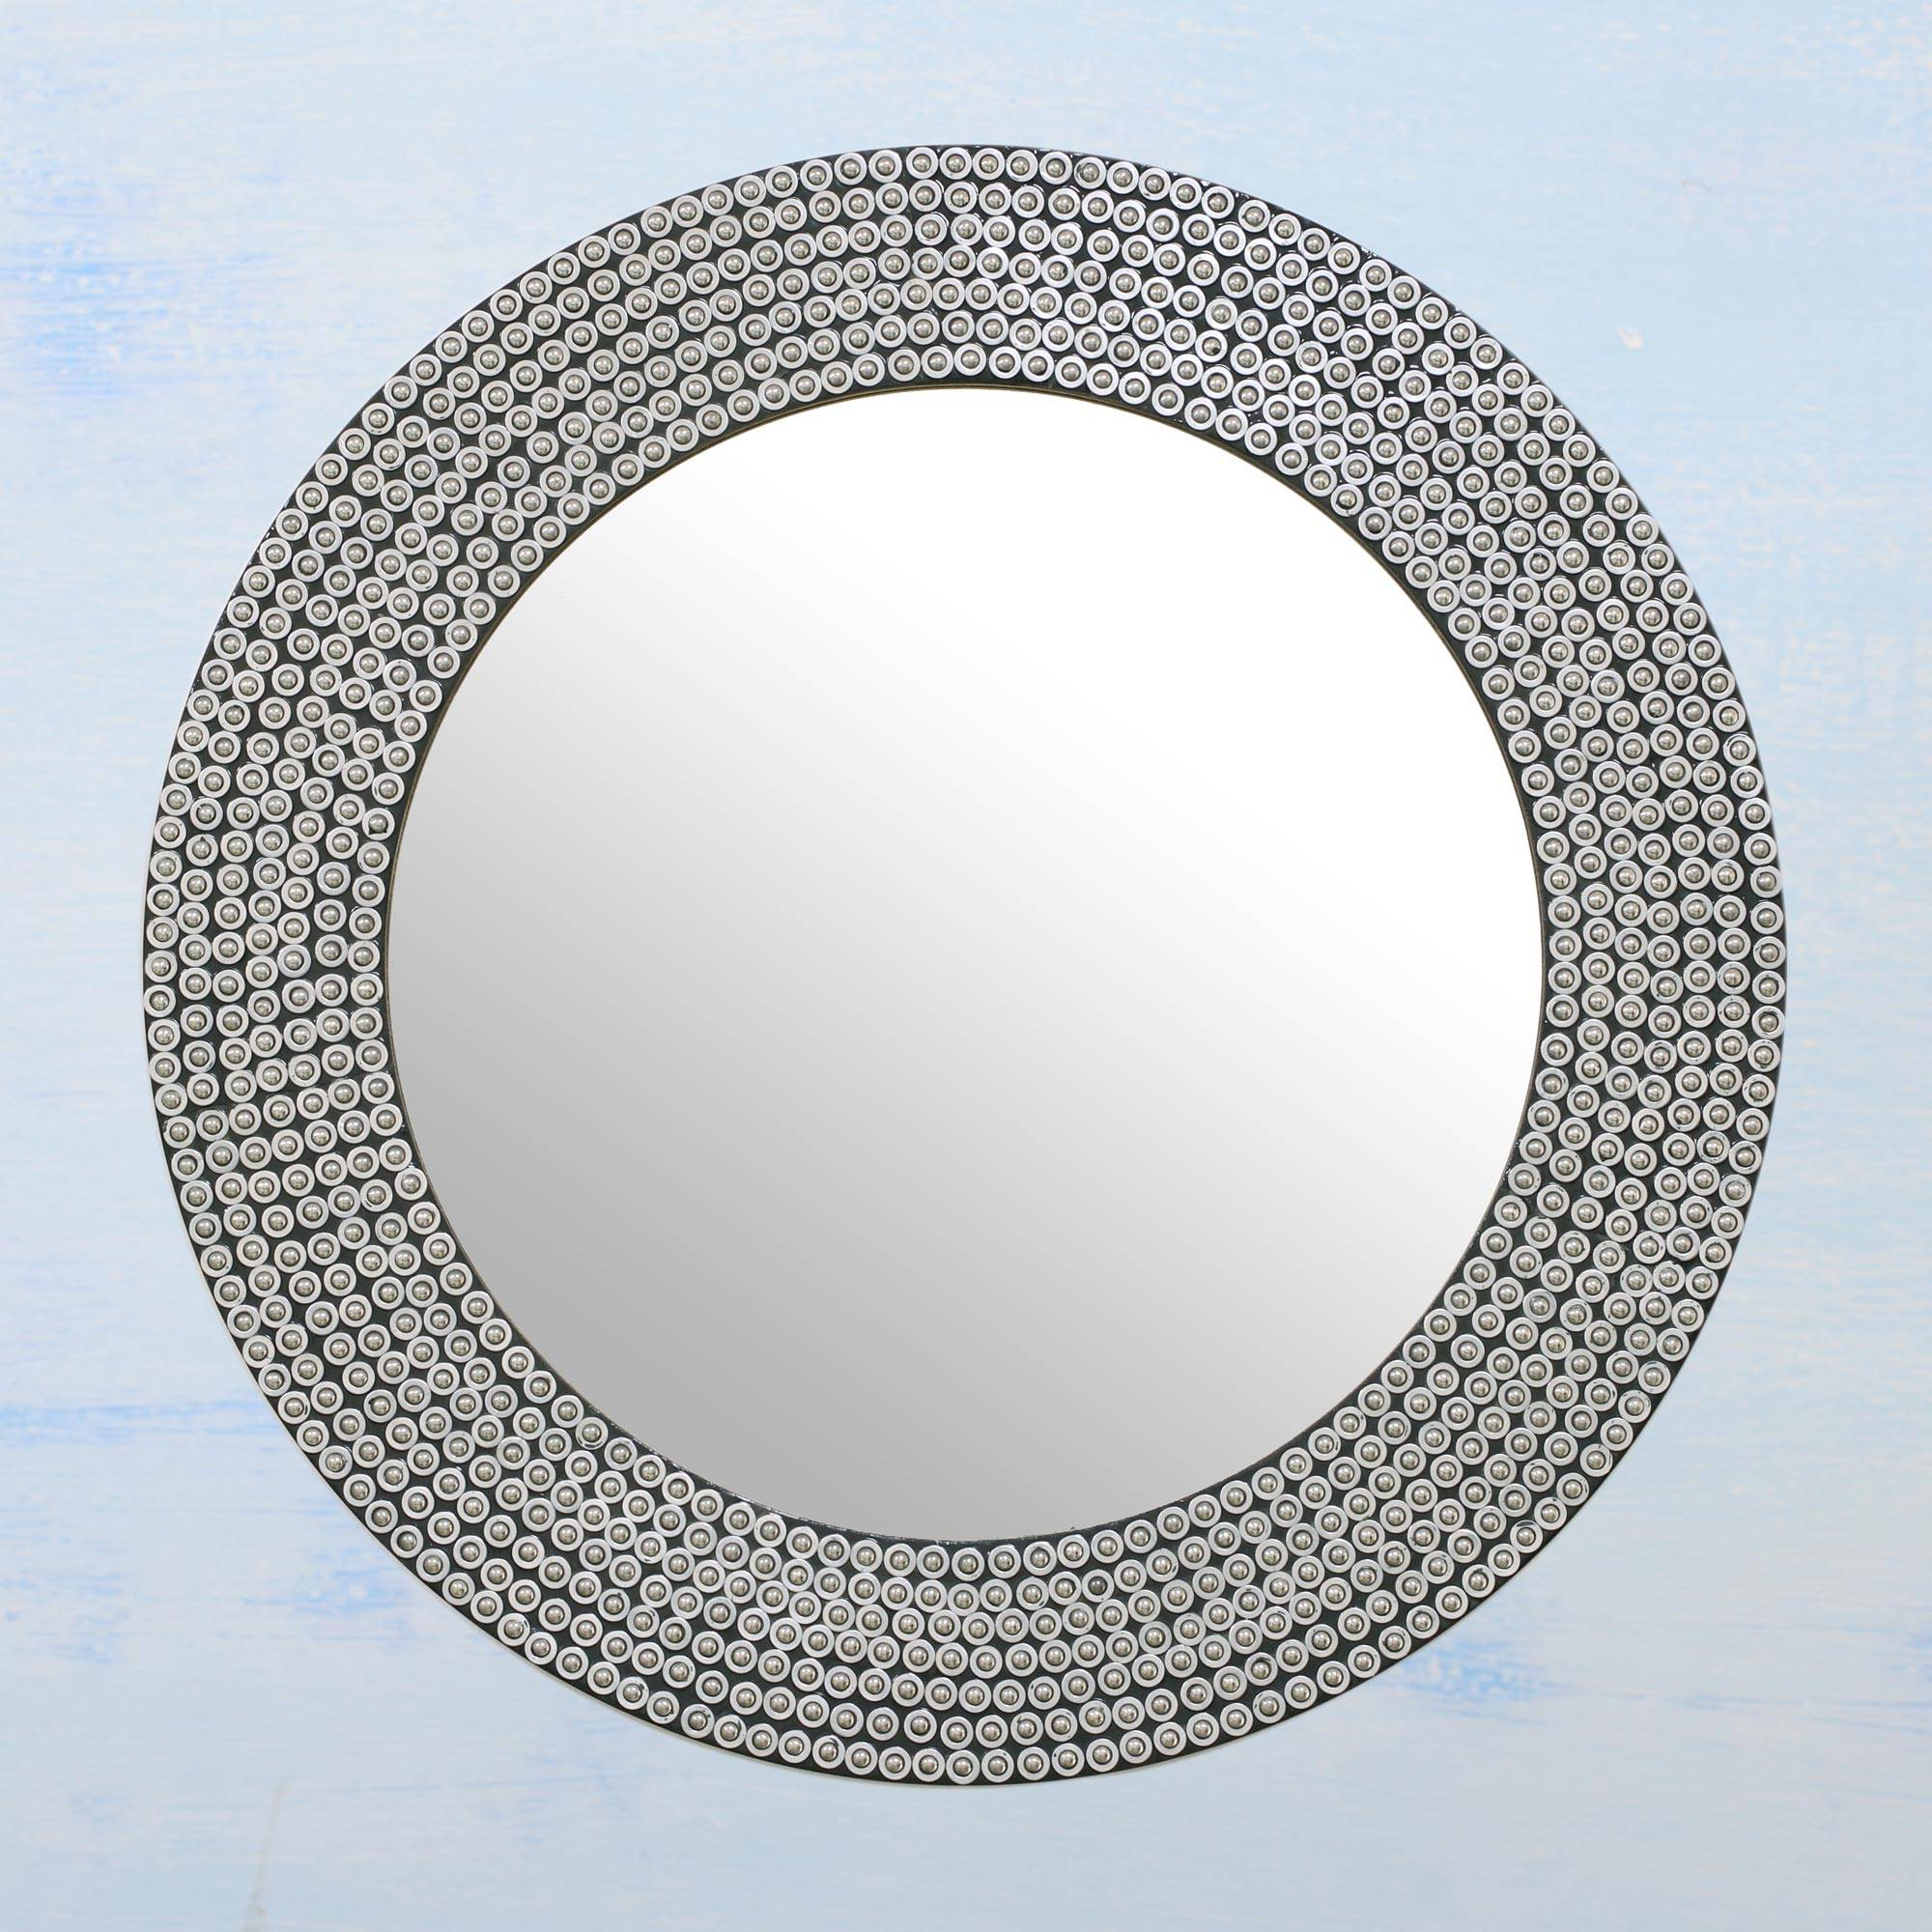 Circular Shimmering Metal Wall Mirror From India, 'silvery Shine' Within 2019 Round Galvanized Metallic Wall Mirrors (View 6 of 20)